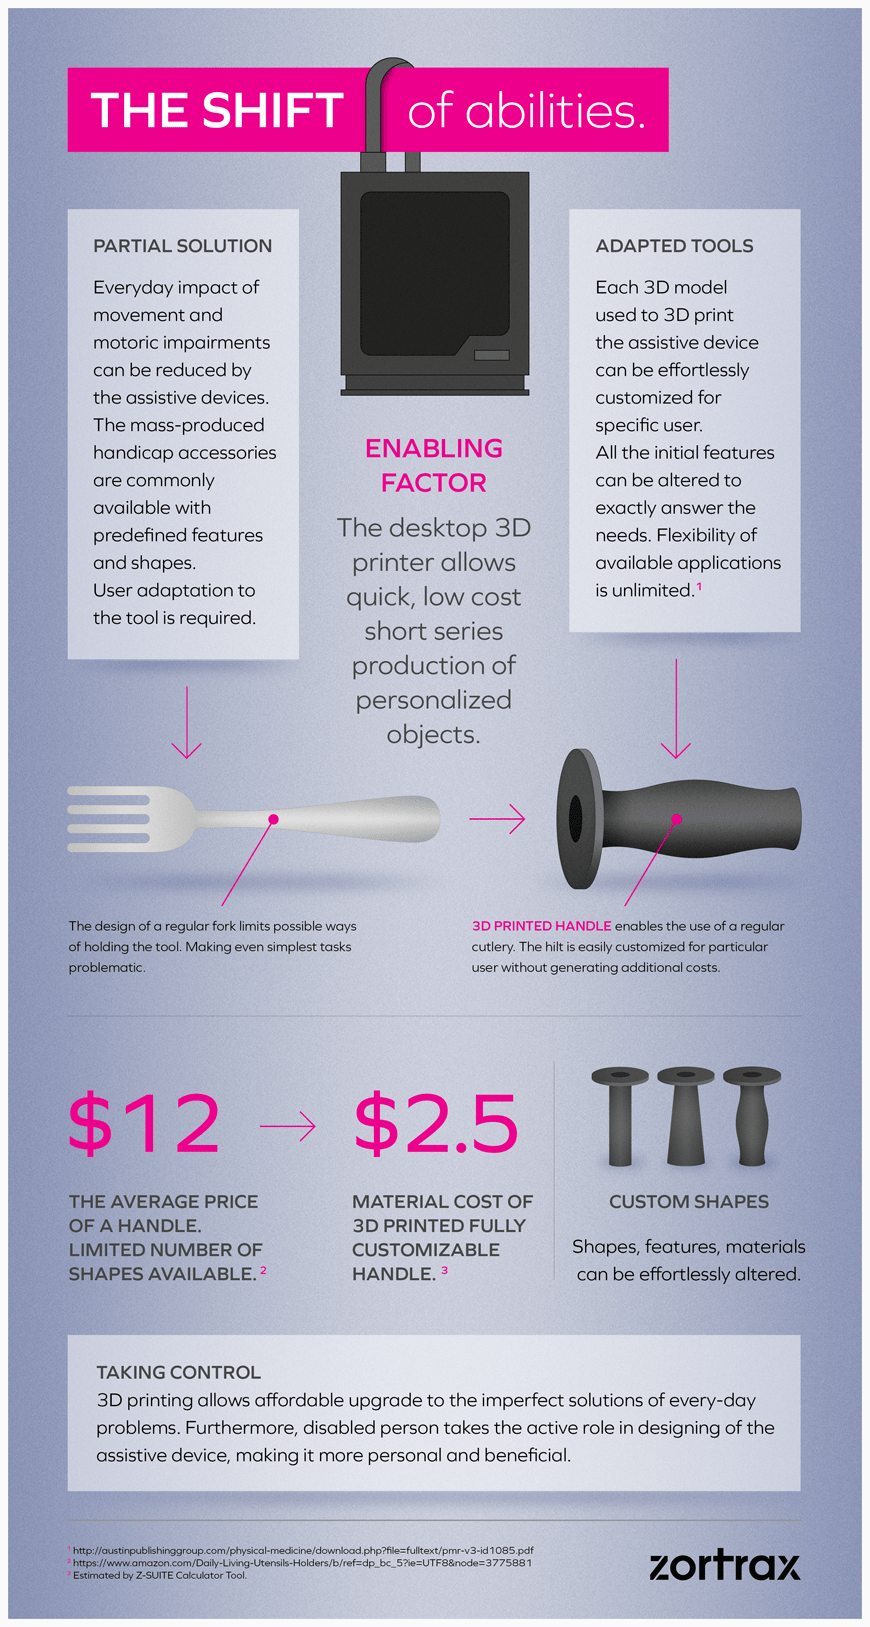 ZORTRAX Pole Ergo 3D Printed Assistive Devices Infographic